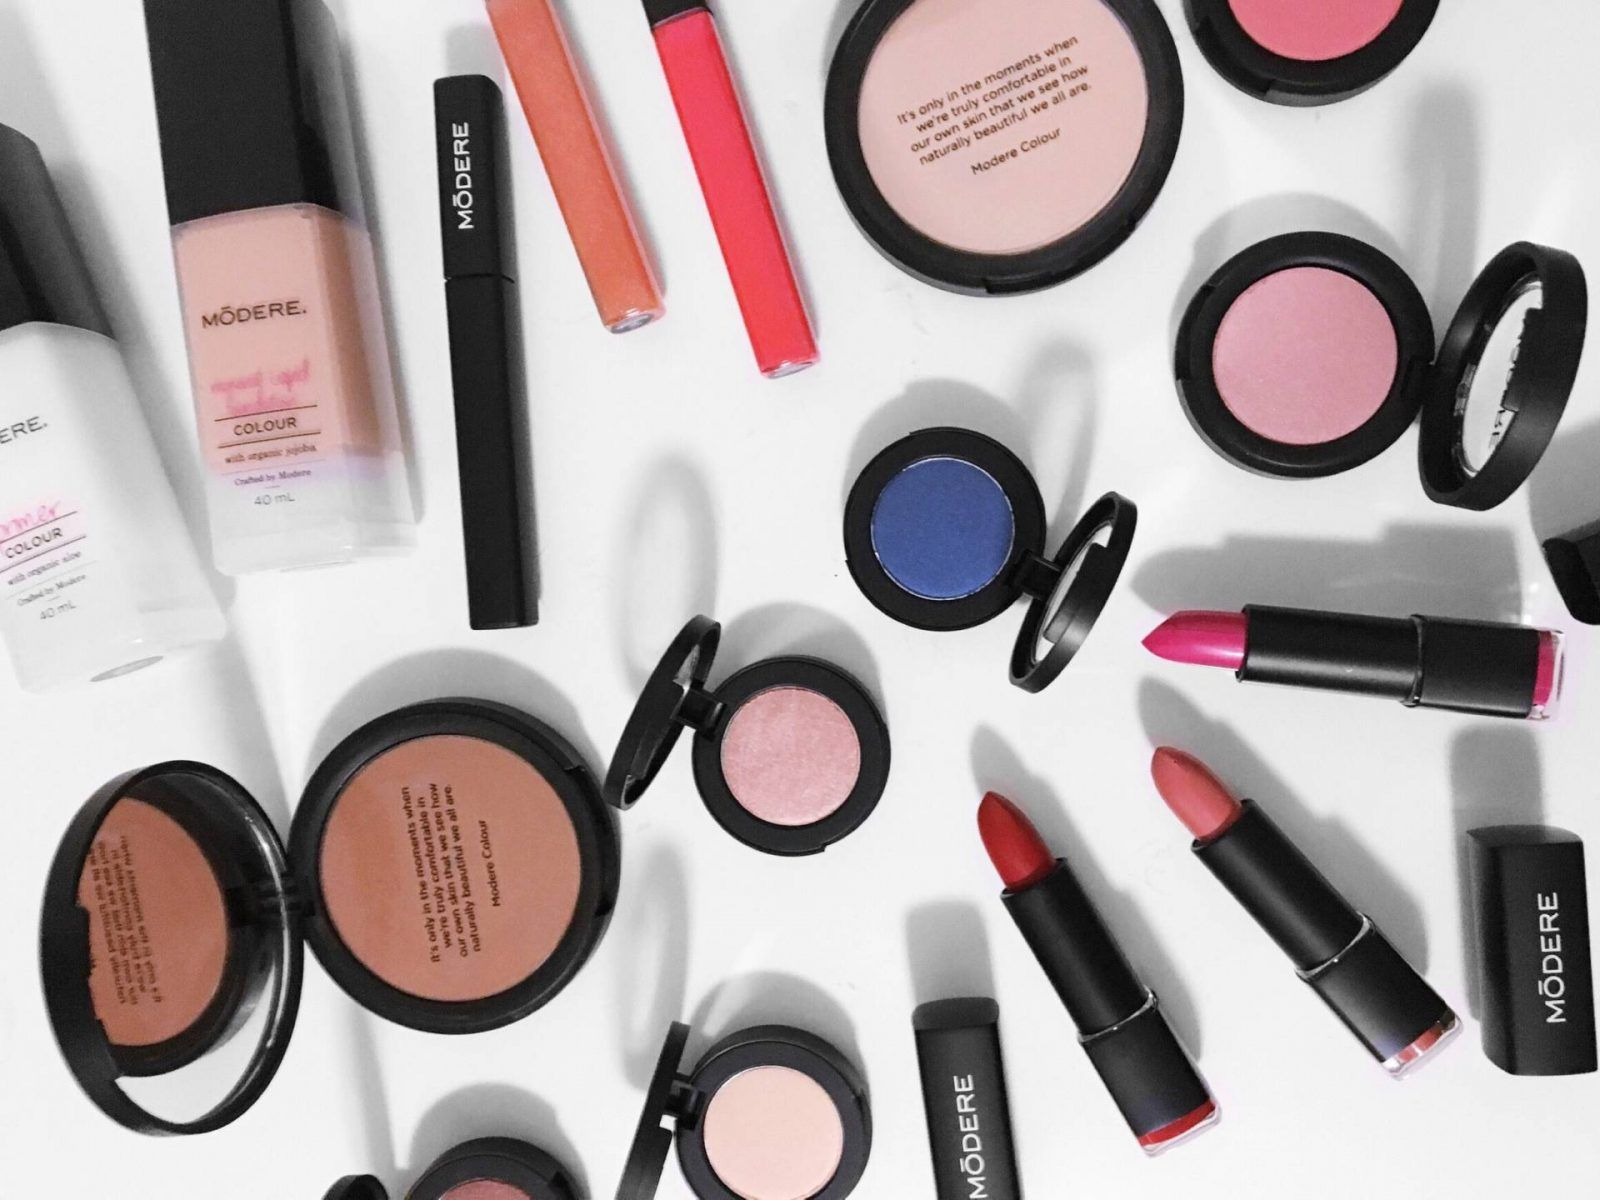 Certified Organic Makeup with Modere Colour Certified